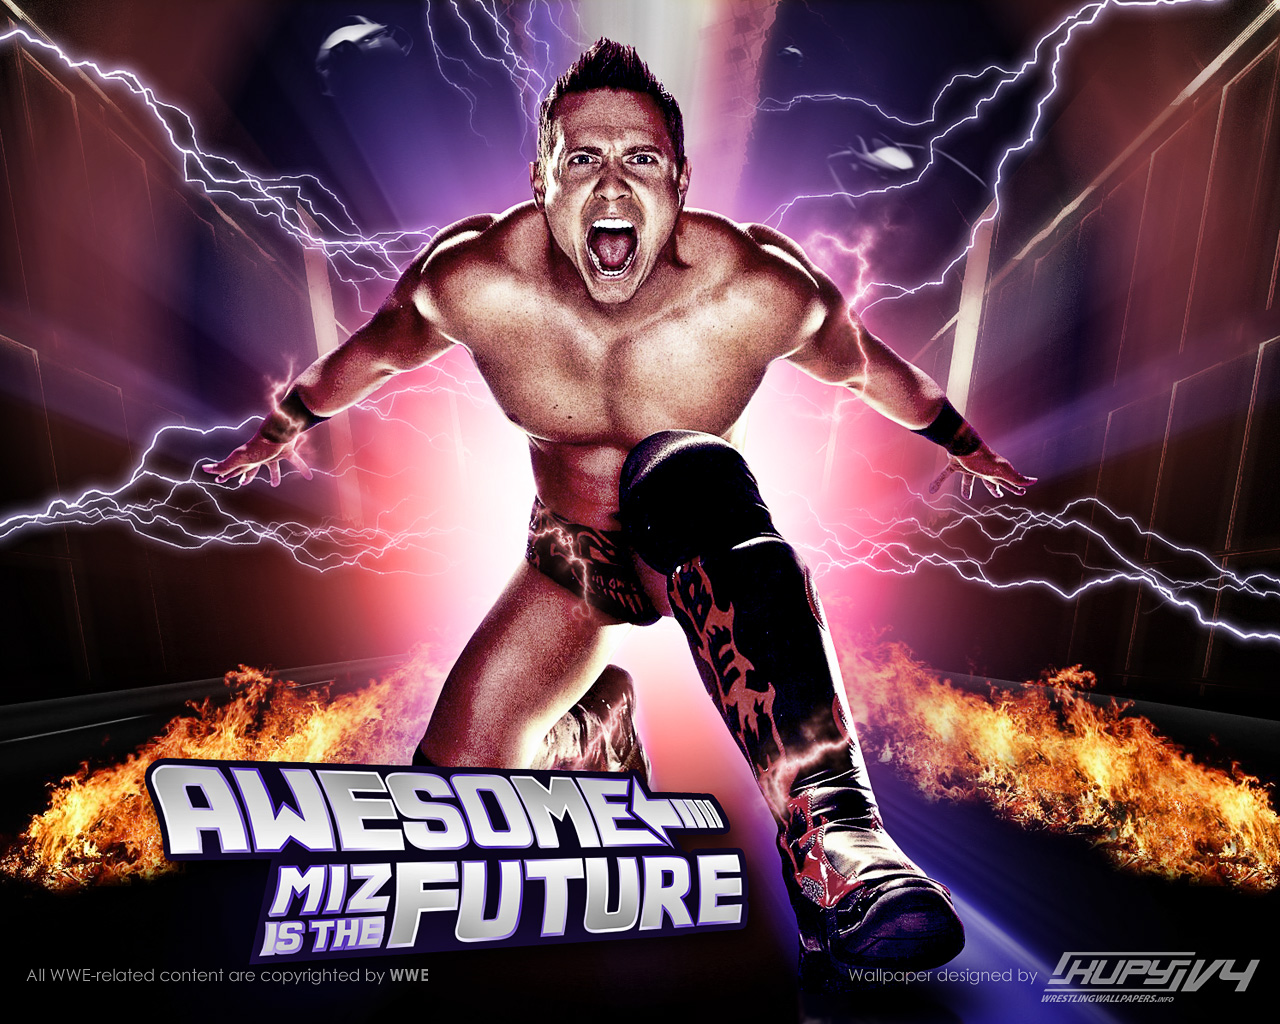 Wwe the miz wallpapers the miz pictures wwe miz wwe - Wwe divas wallpapers ...